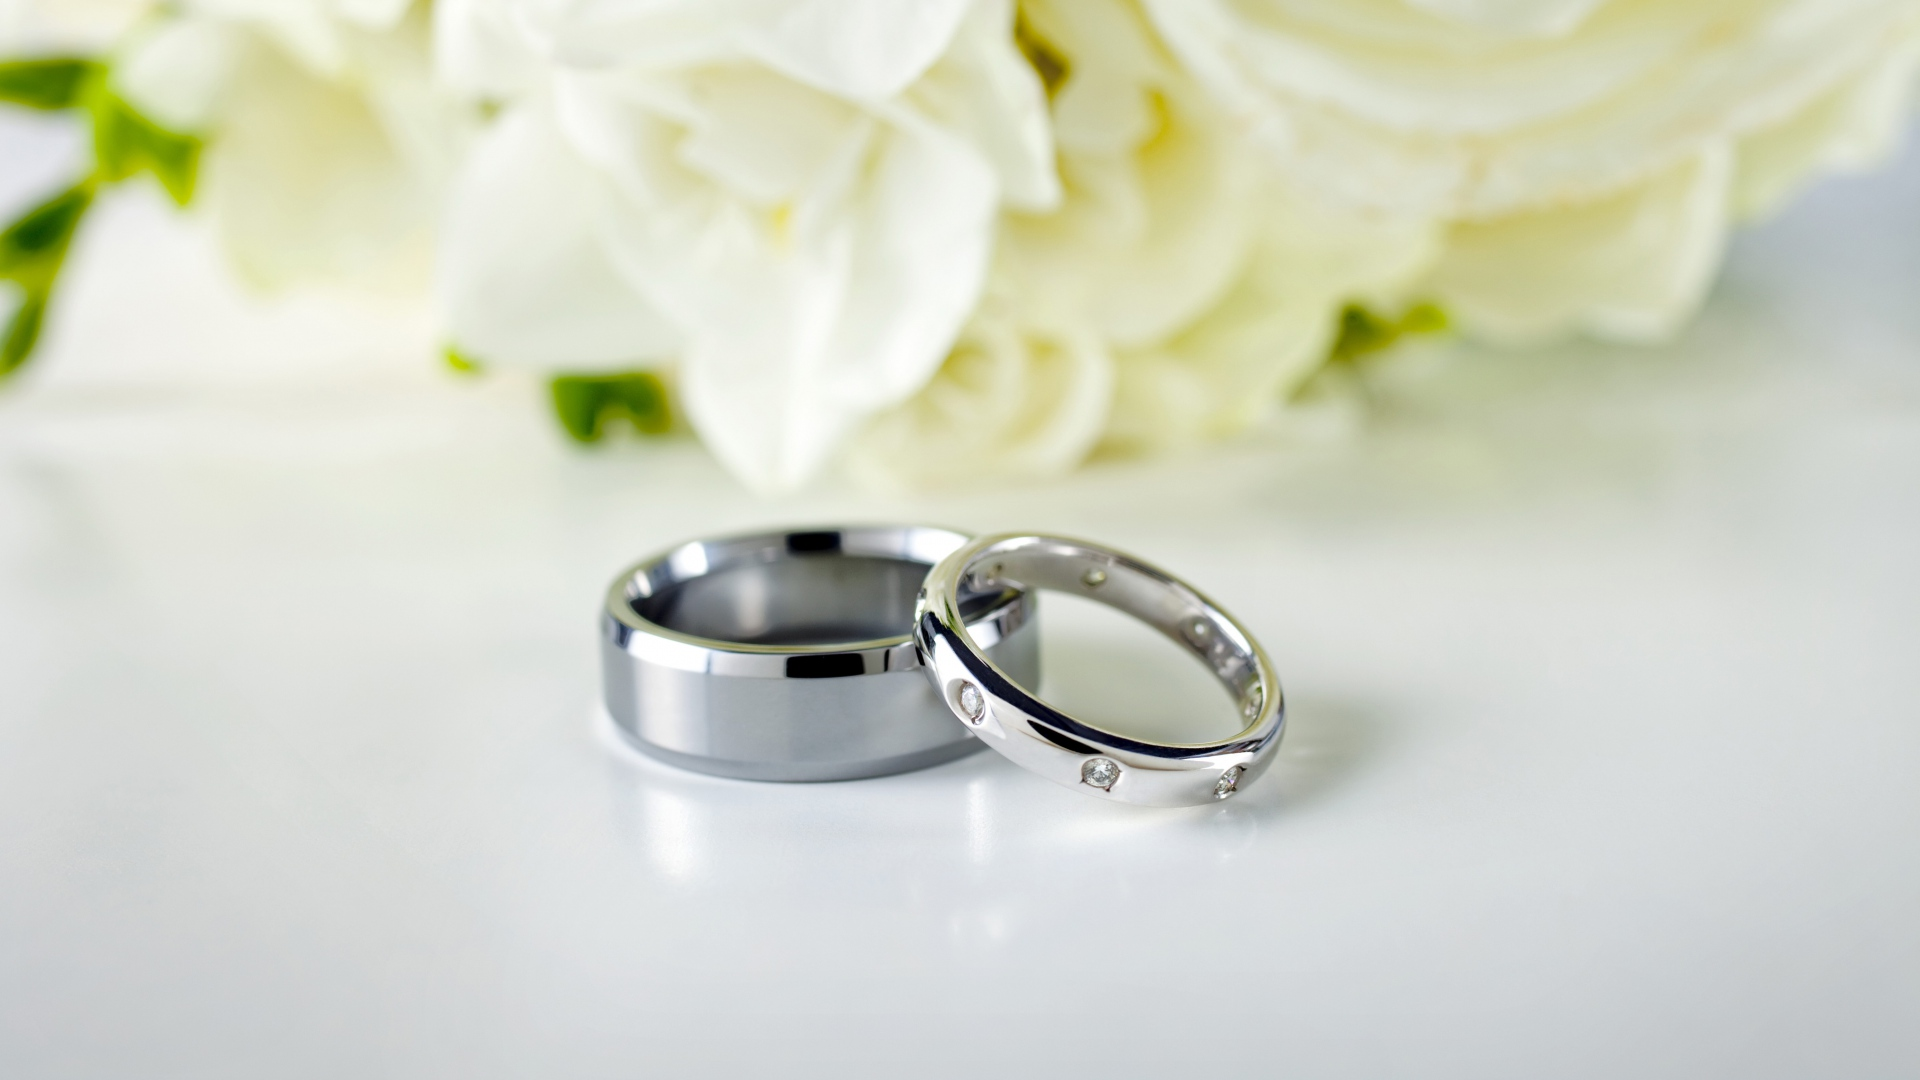 Download Wallpaper 1920x1080 rings couple wedding silver